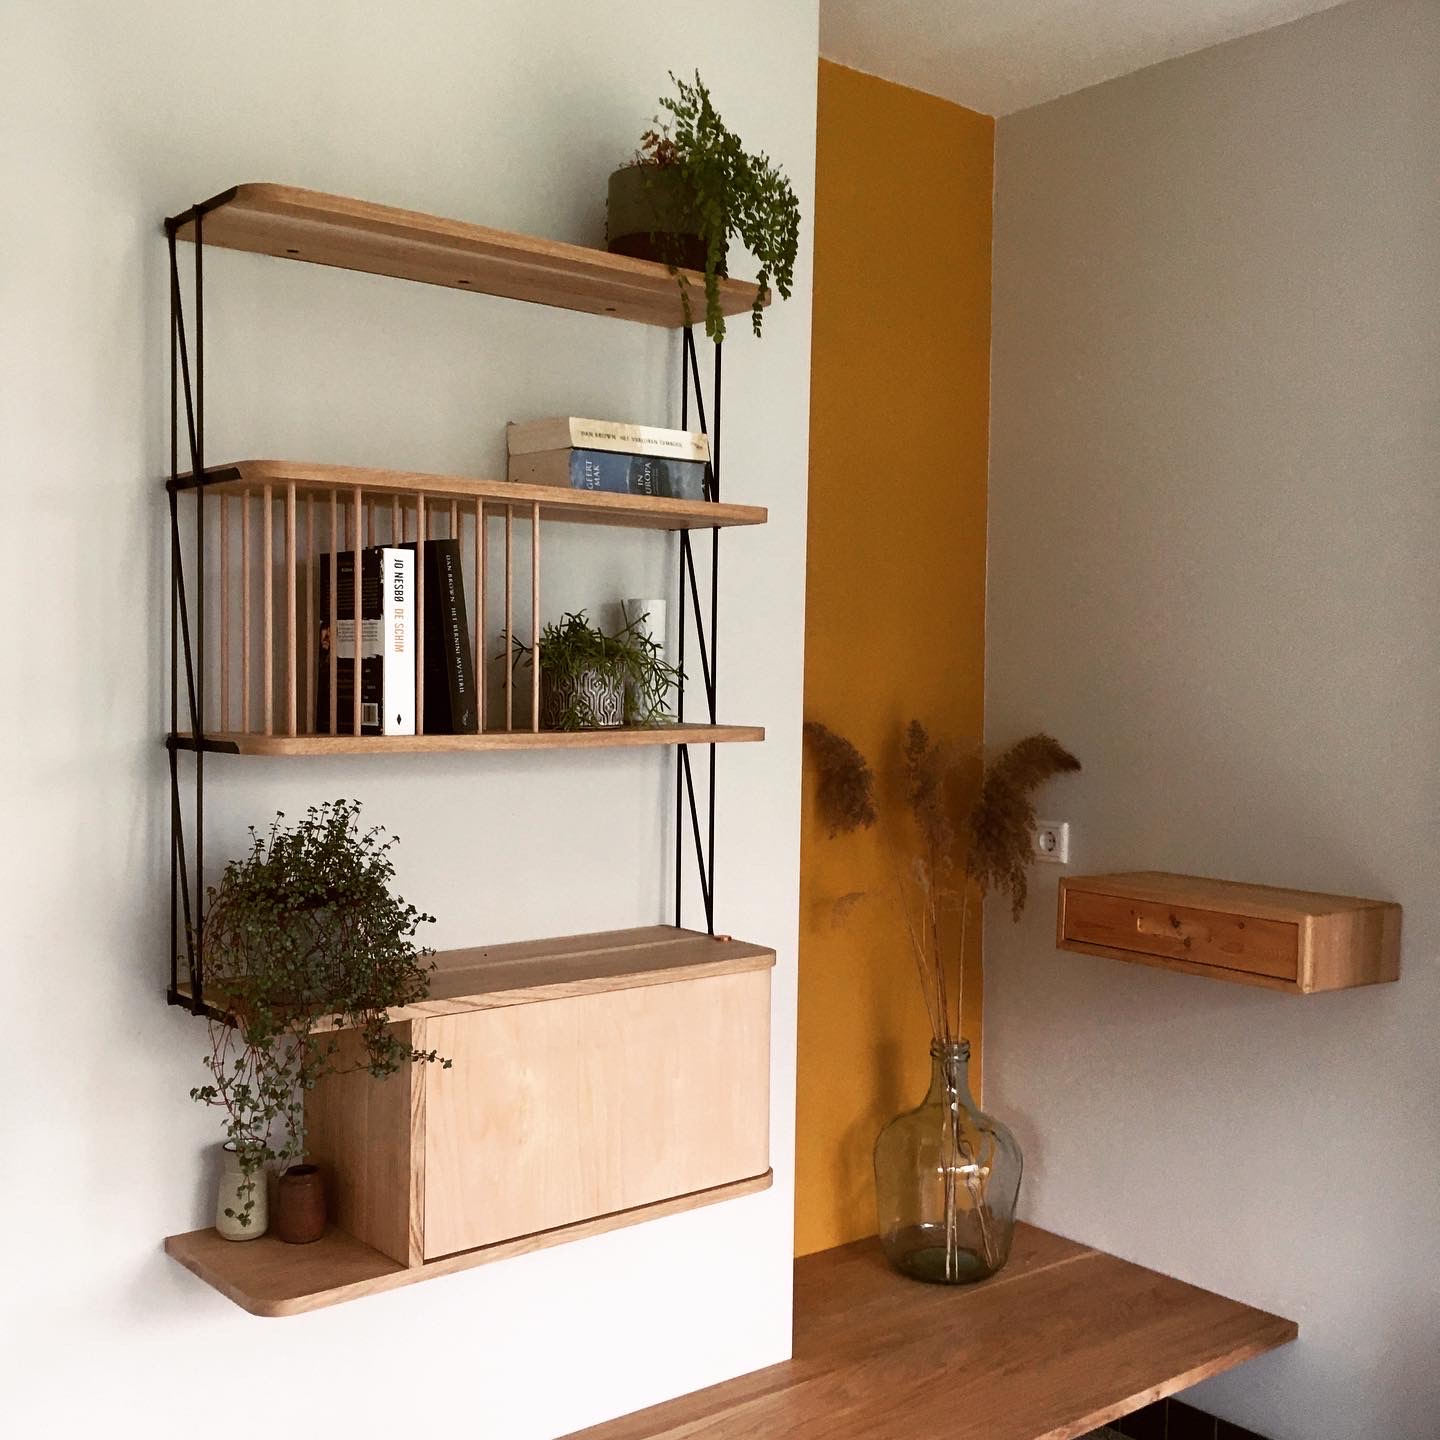 Hanging Shelves And Cabinet